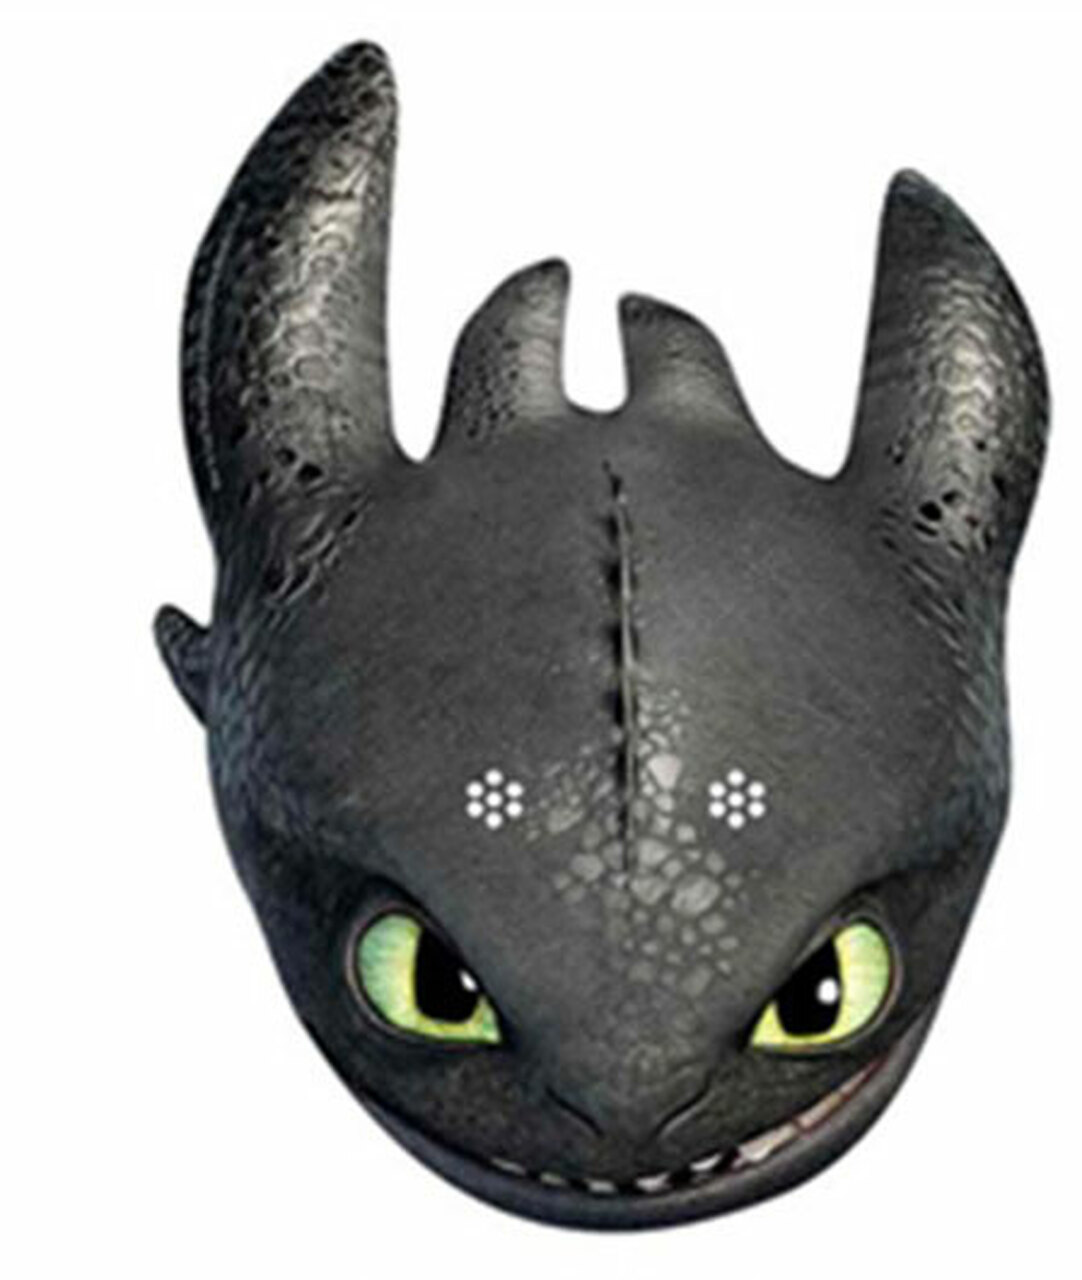 Toothless How To Train Your Dragon 2 Party Face Mask Available Now At Starstills Com